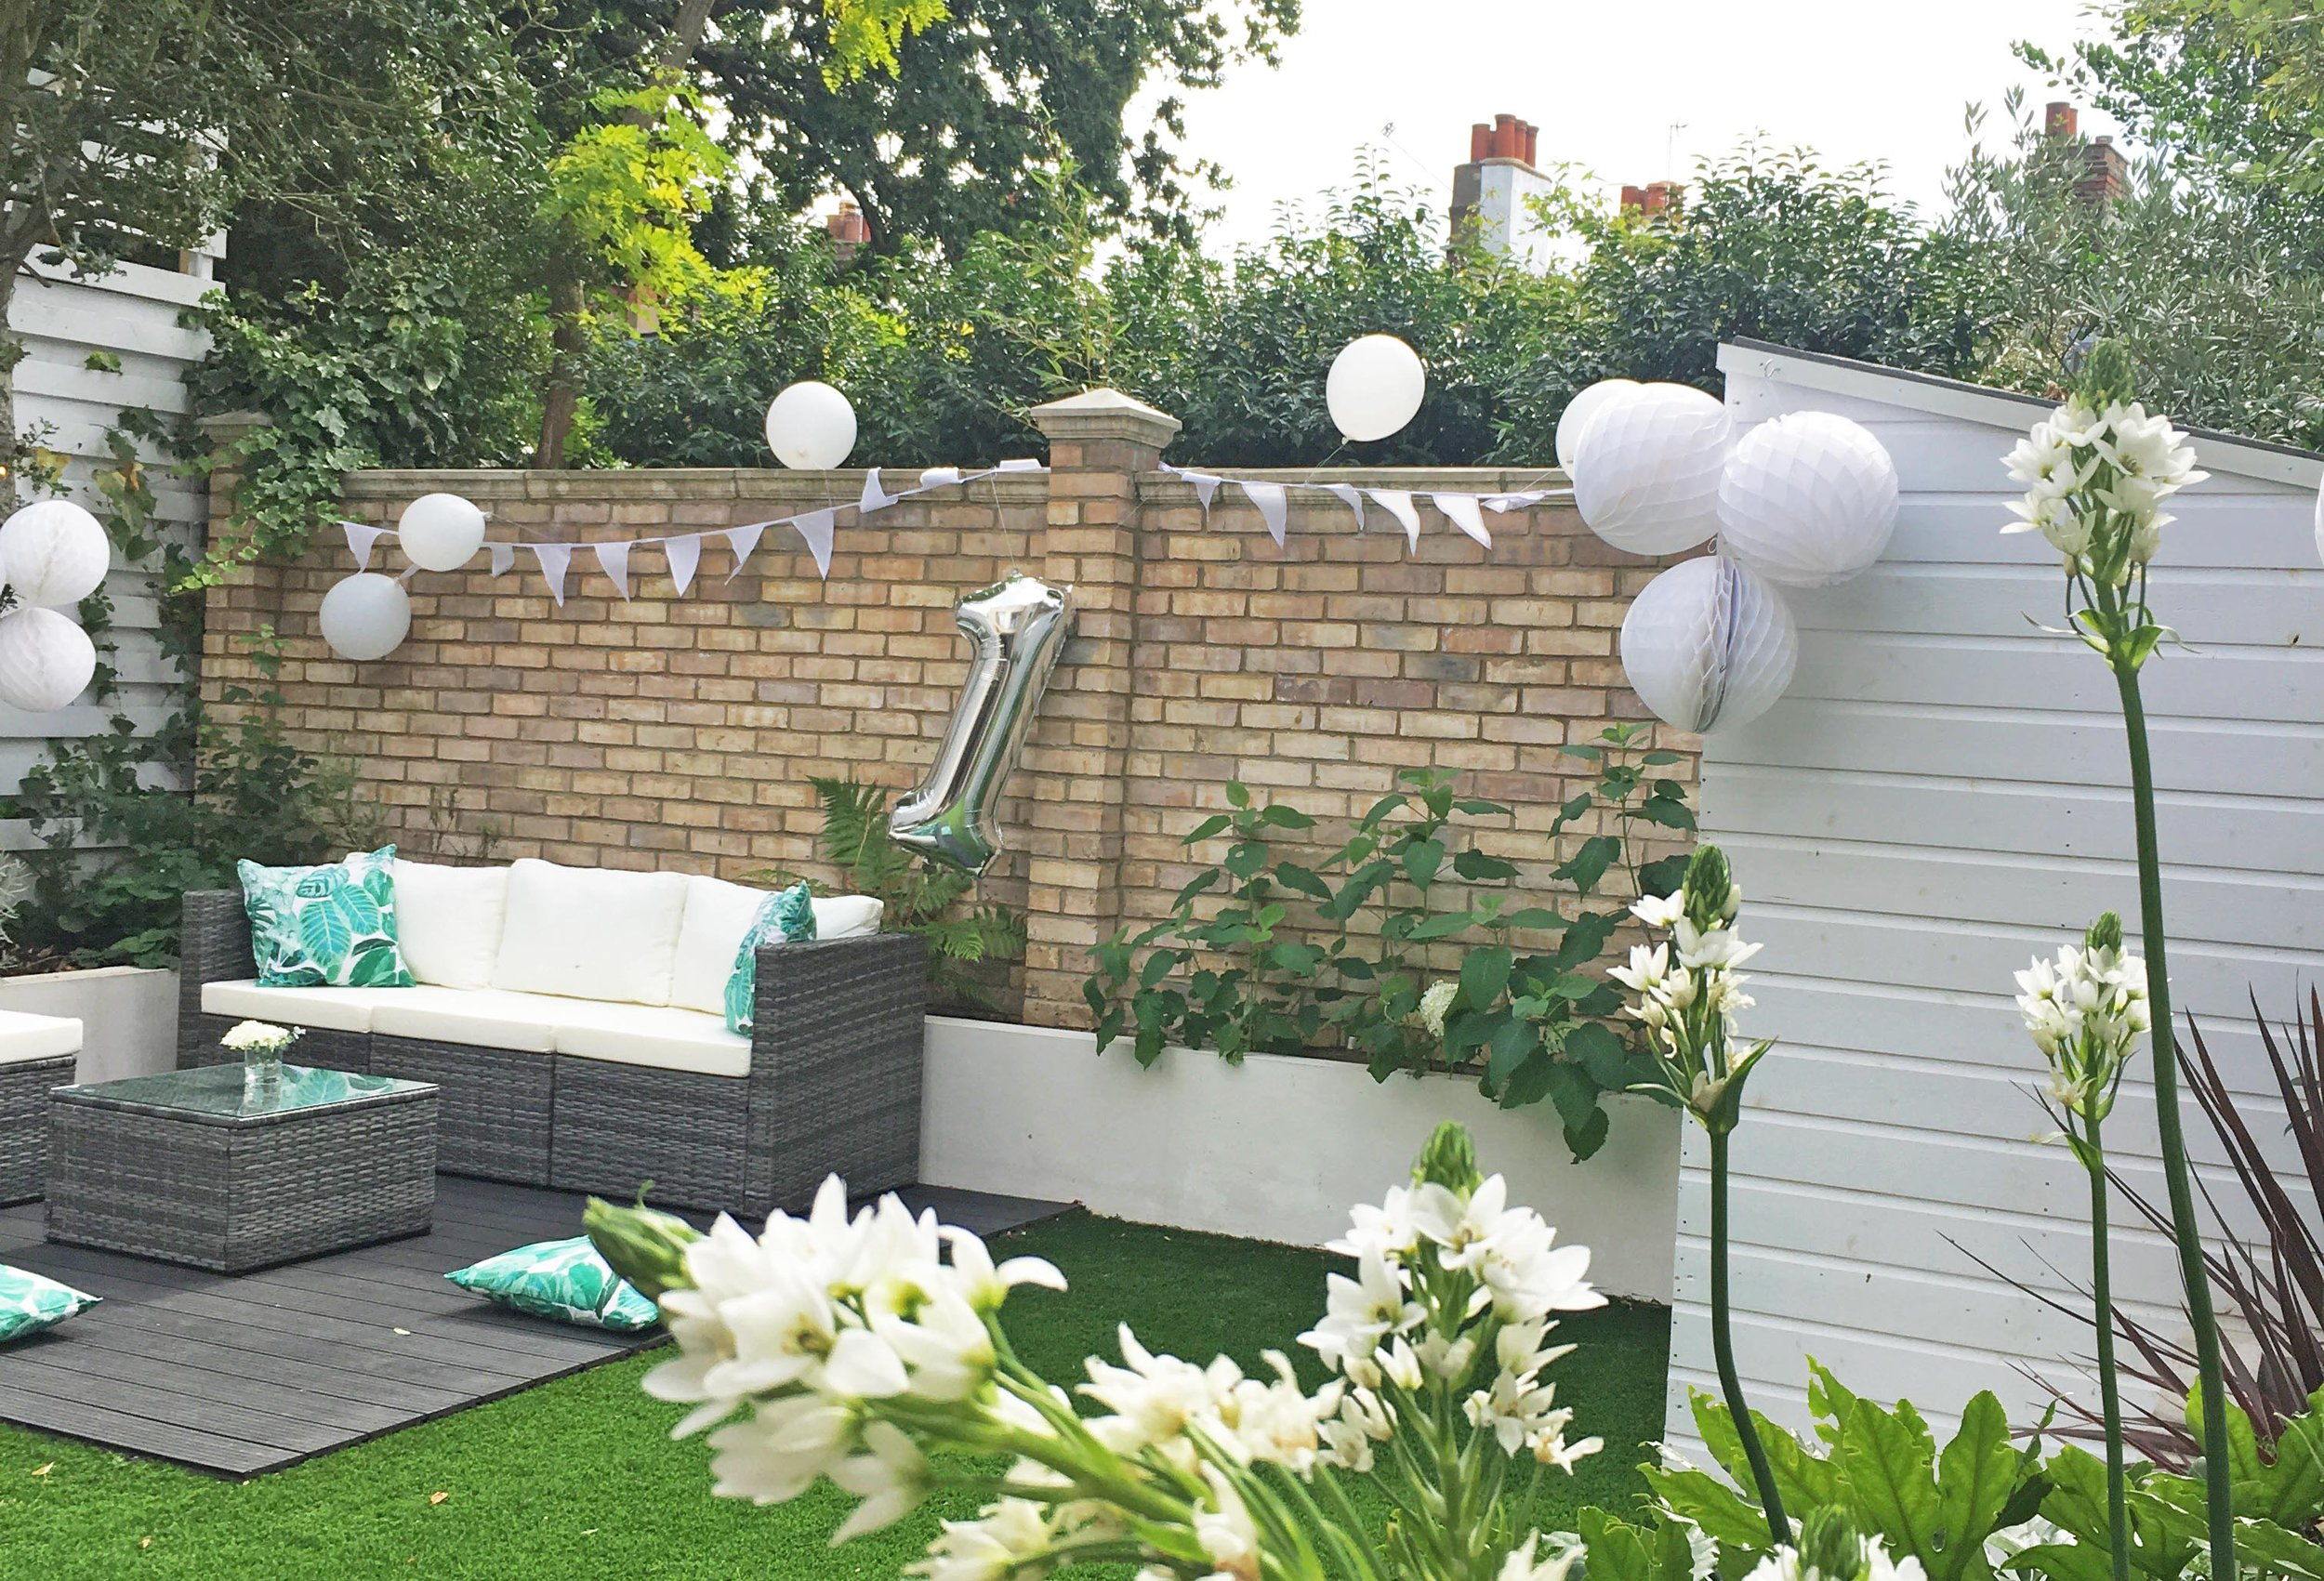 The garden decorated and ready for our daughter's first birthday party.